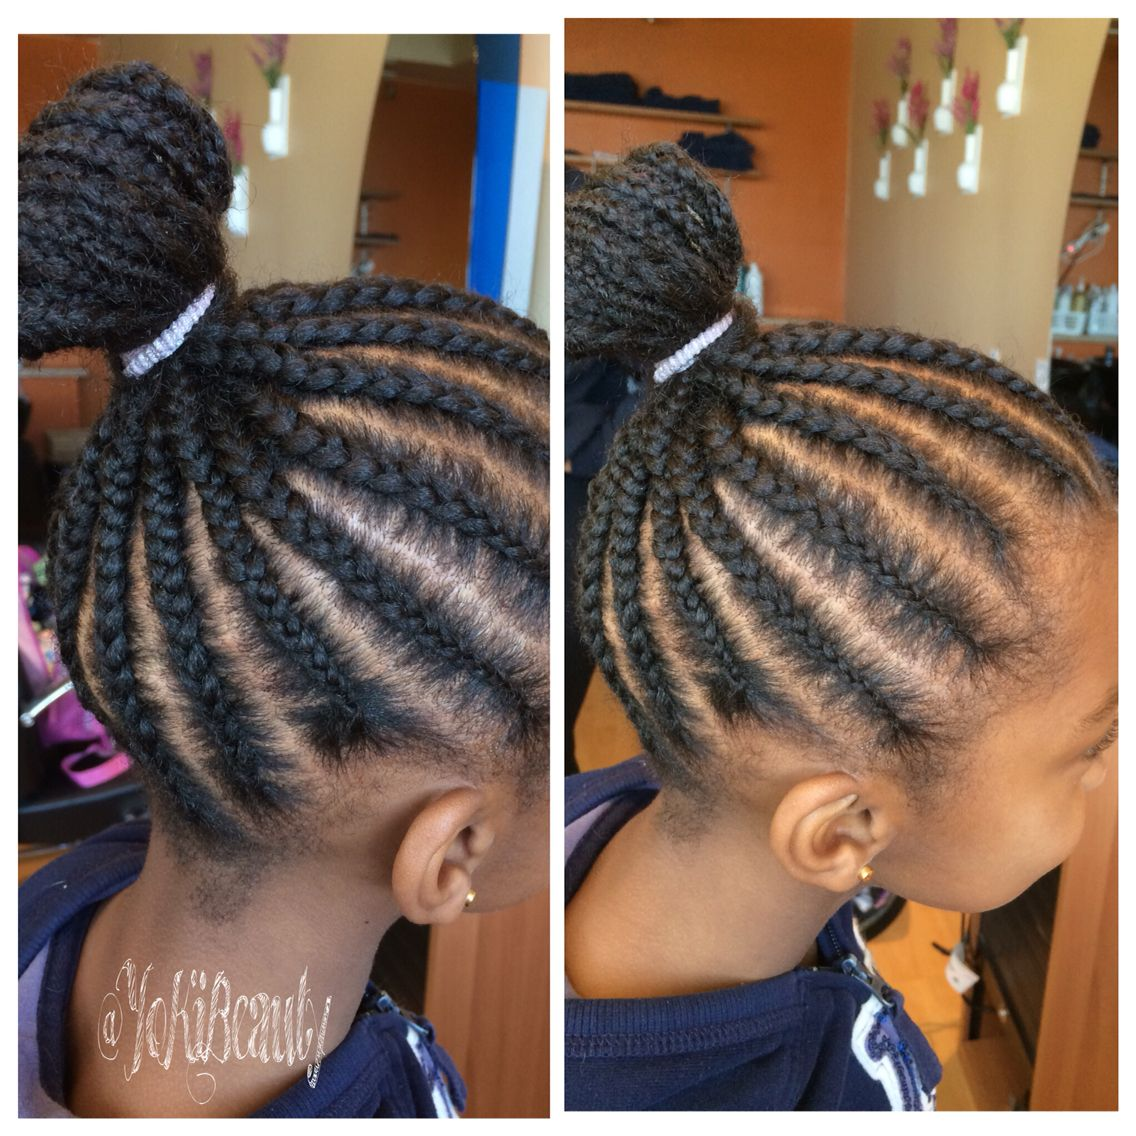 Braids Going Up Into A Ponytail Mini Twists Natural Hair Hair Styles Natural Hair Styles